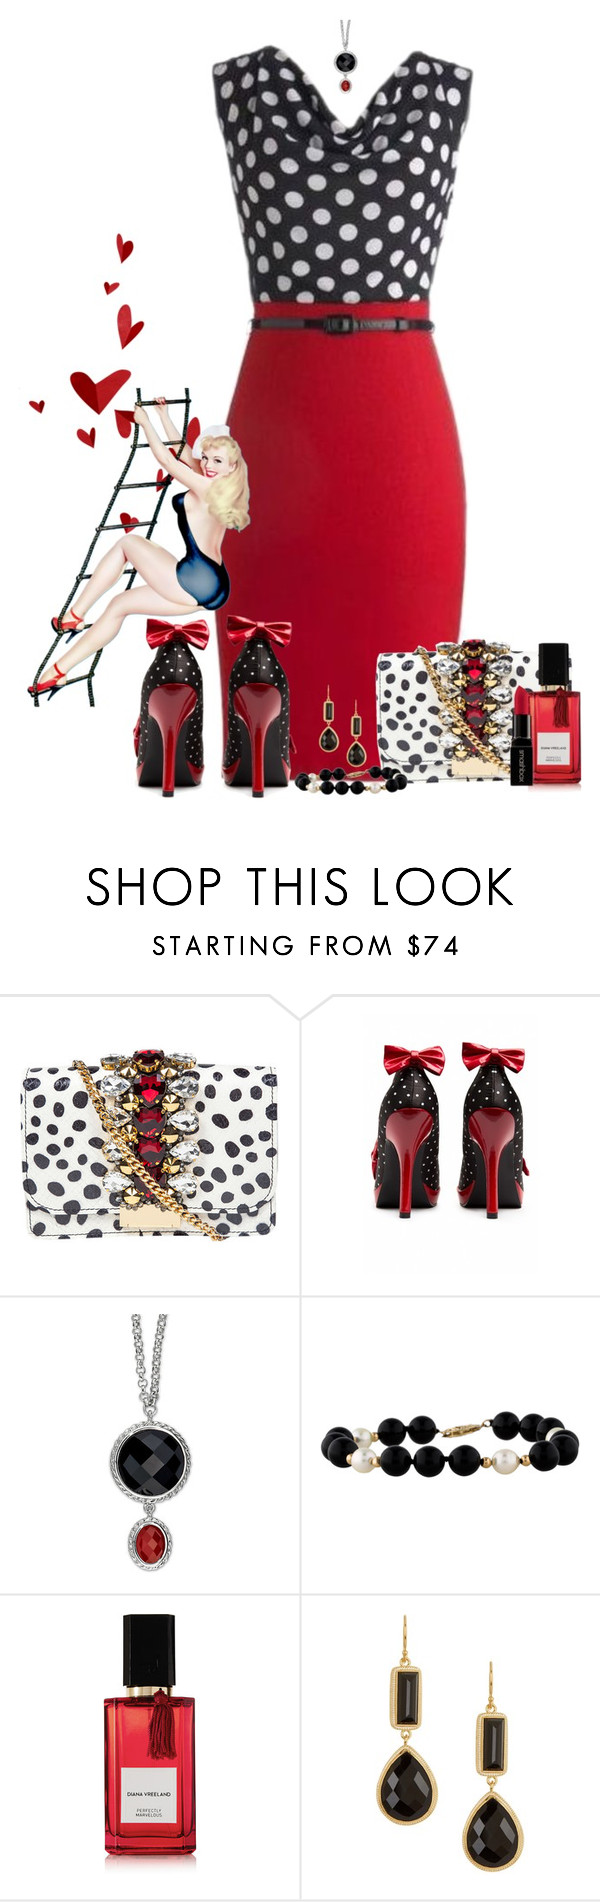 """""""Untitled #289"""" by melanie-westfall ❤ liked on Polyvore featuring moda, GEDEBE, Pinup Couture, Diana Vreeland Parfums, Anna Beck, Smashbox, women's clothing, women's fashion, women e female"""